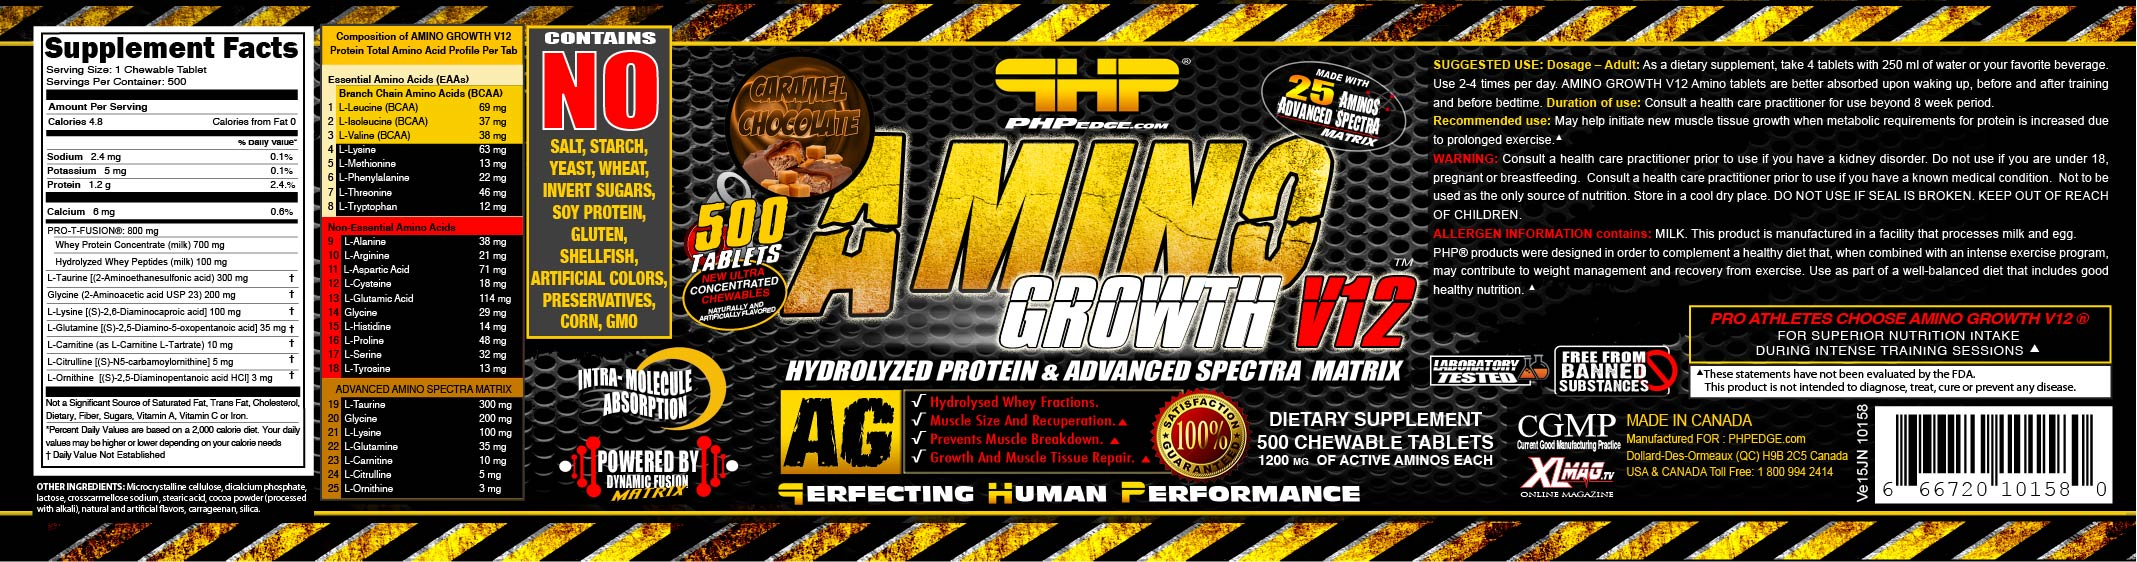 AMCH0500-1200-10158 AMINO GROWTH V12 ® CARAMEL CHOCOLATE USA VE15JN